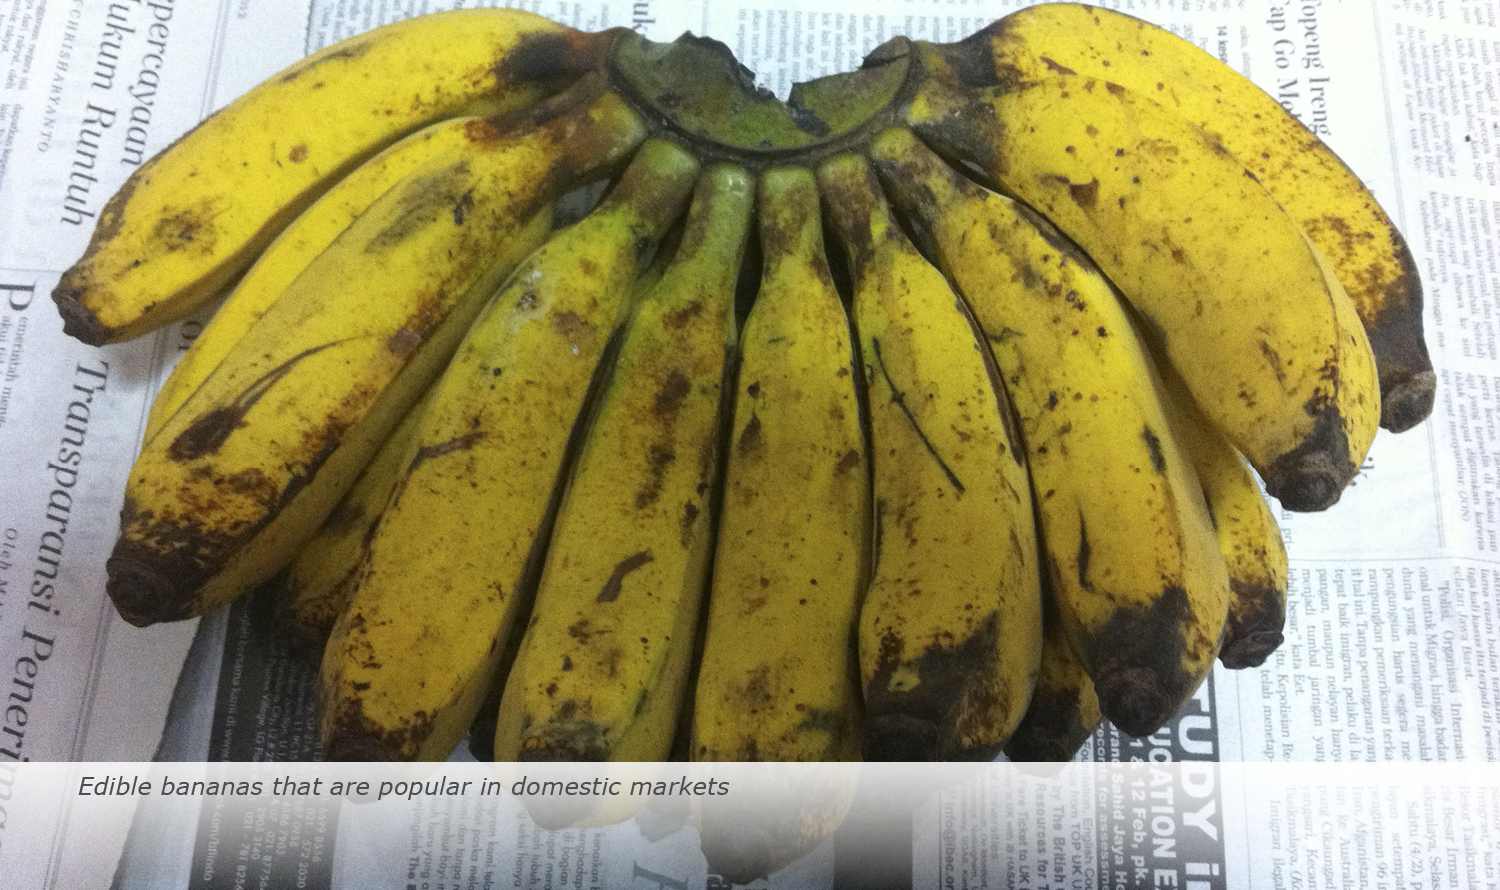 Info & Facts: Edible banana that are popular in domestic markets